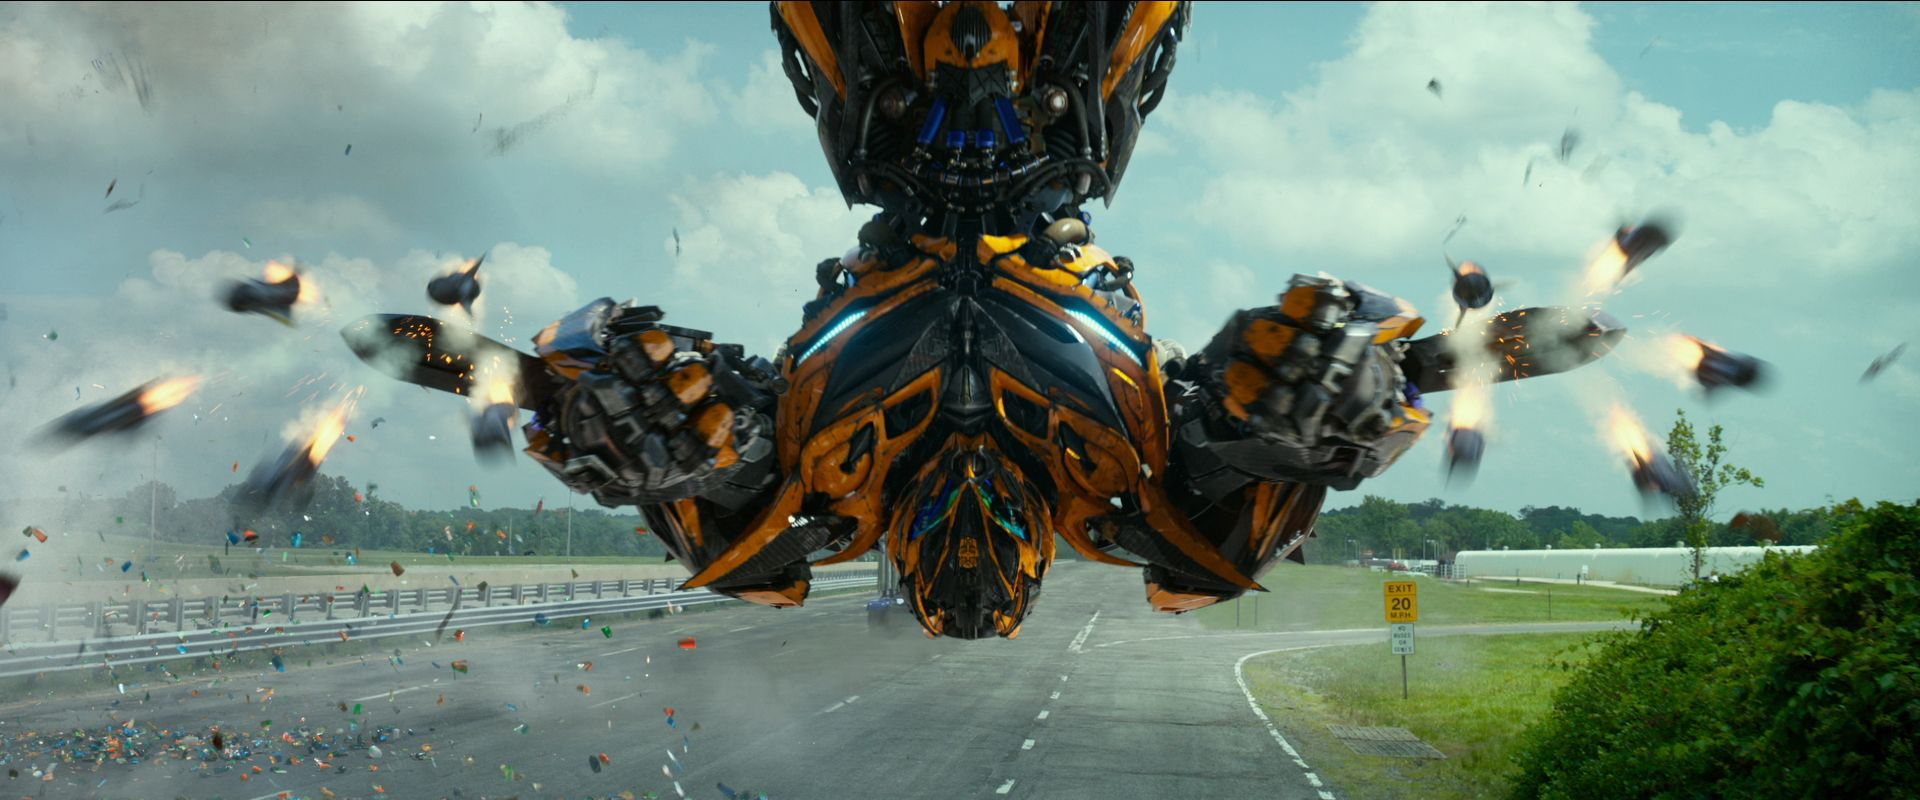 39 transformers 39 spinoff bumblebee release date cast revealed collider. Black Bedroom Furniture Sets. Home Design Ideas